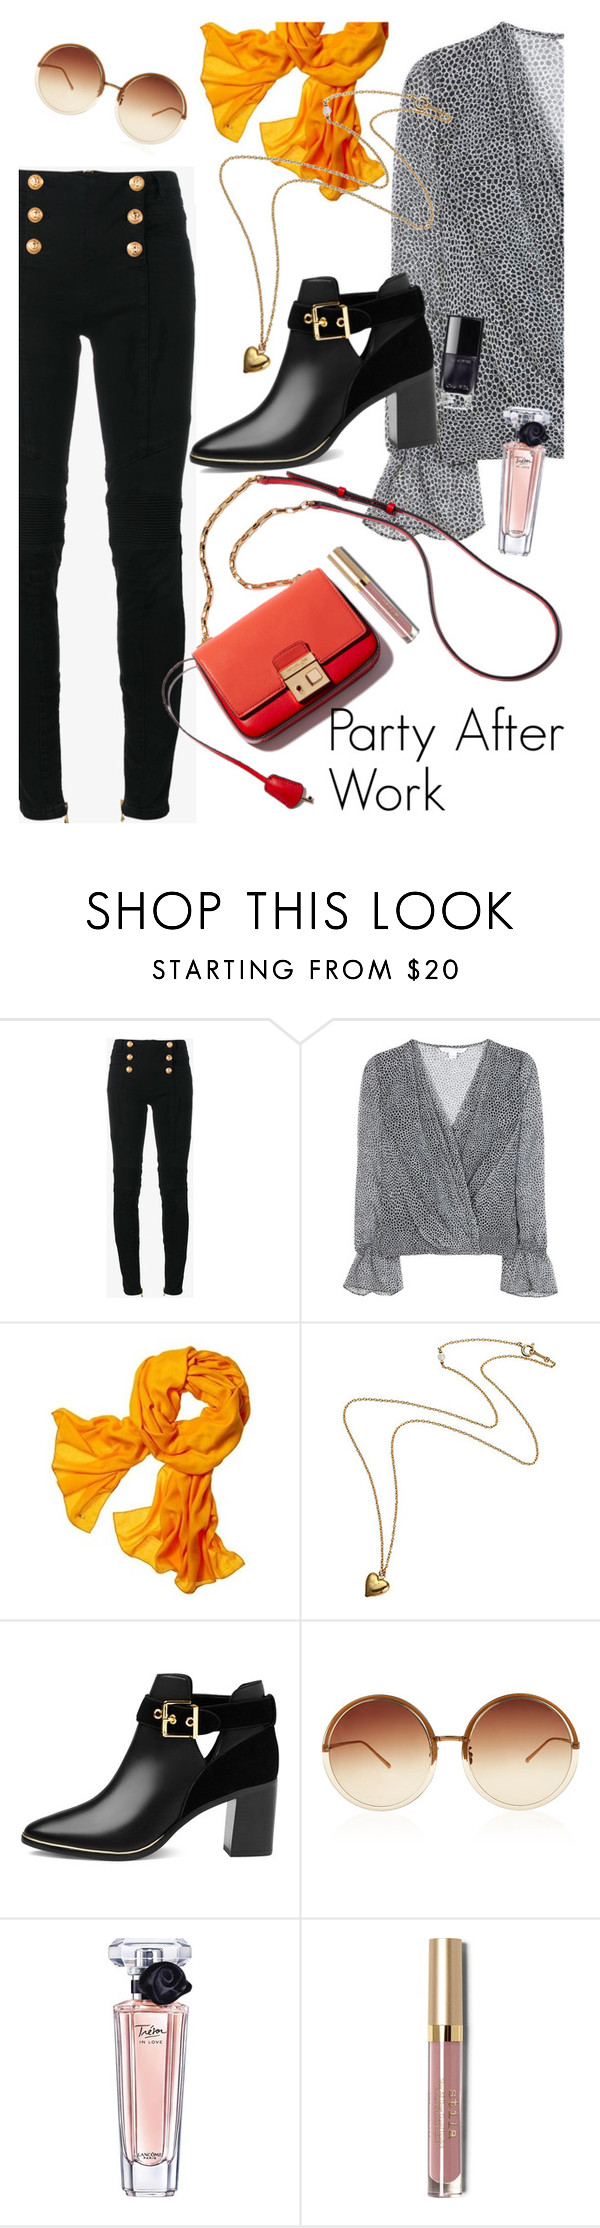 """""""its a cold one!"""" by elliewriter ❤ liked on Polyvore featuring Balmain, Diane Von Furstenberg, Reed Krakoff, Ted Baker, Linda Farrow, Lancôme and Stila"""